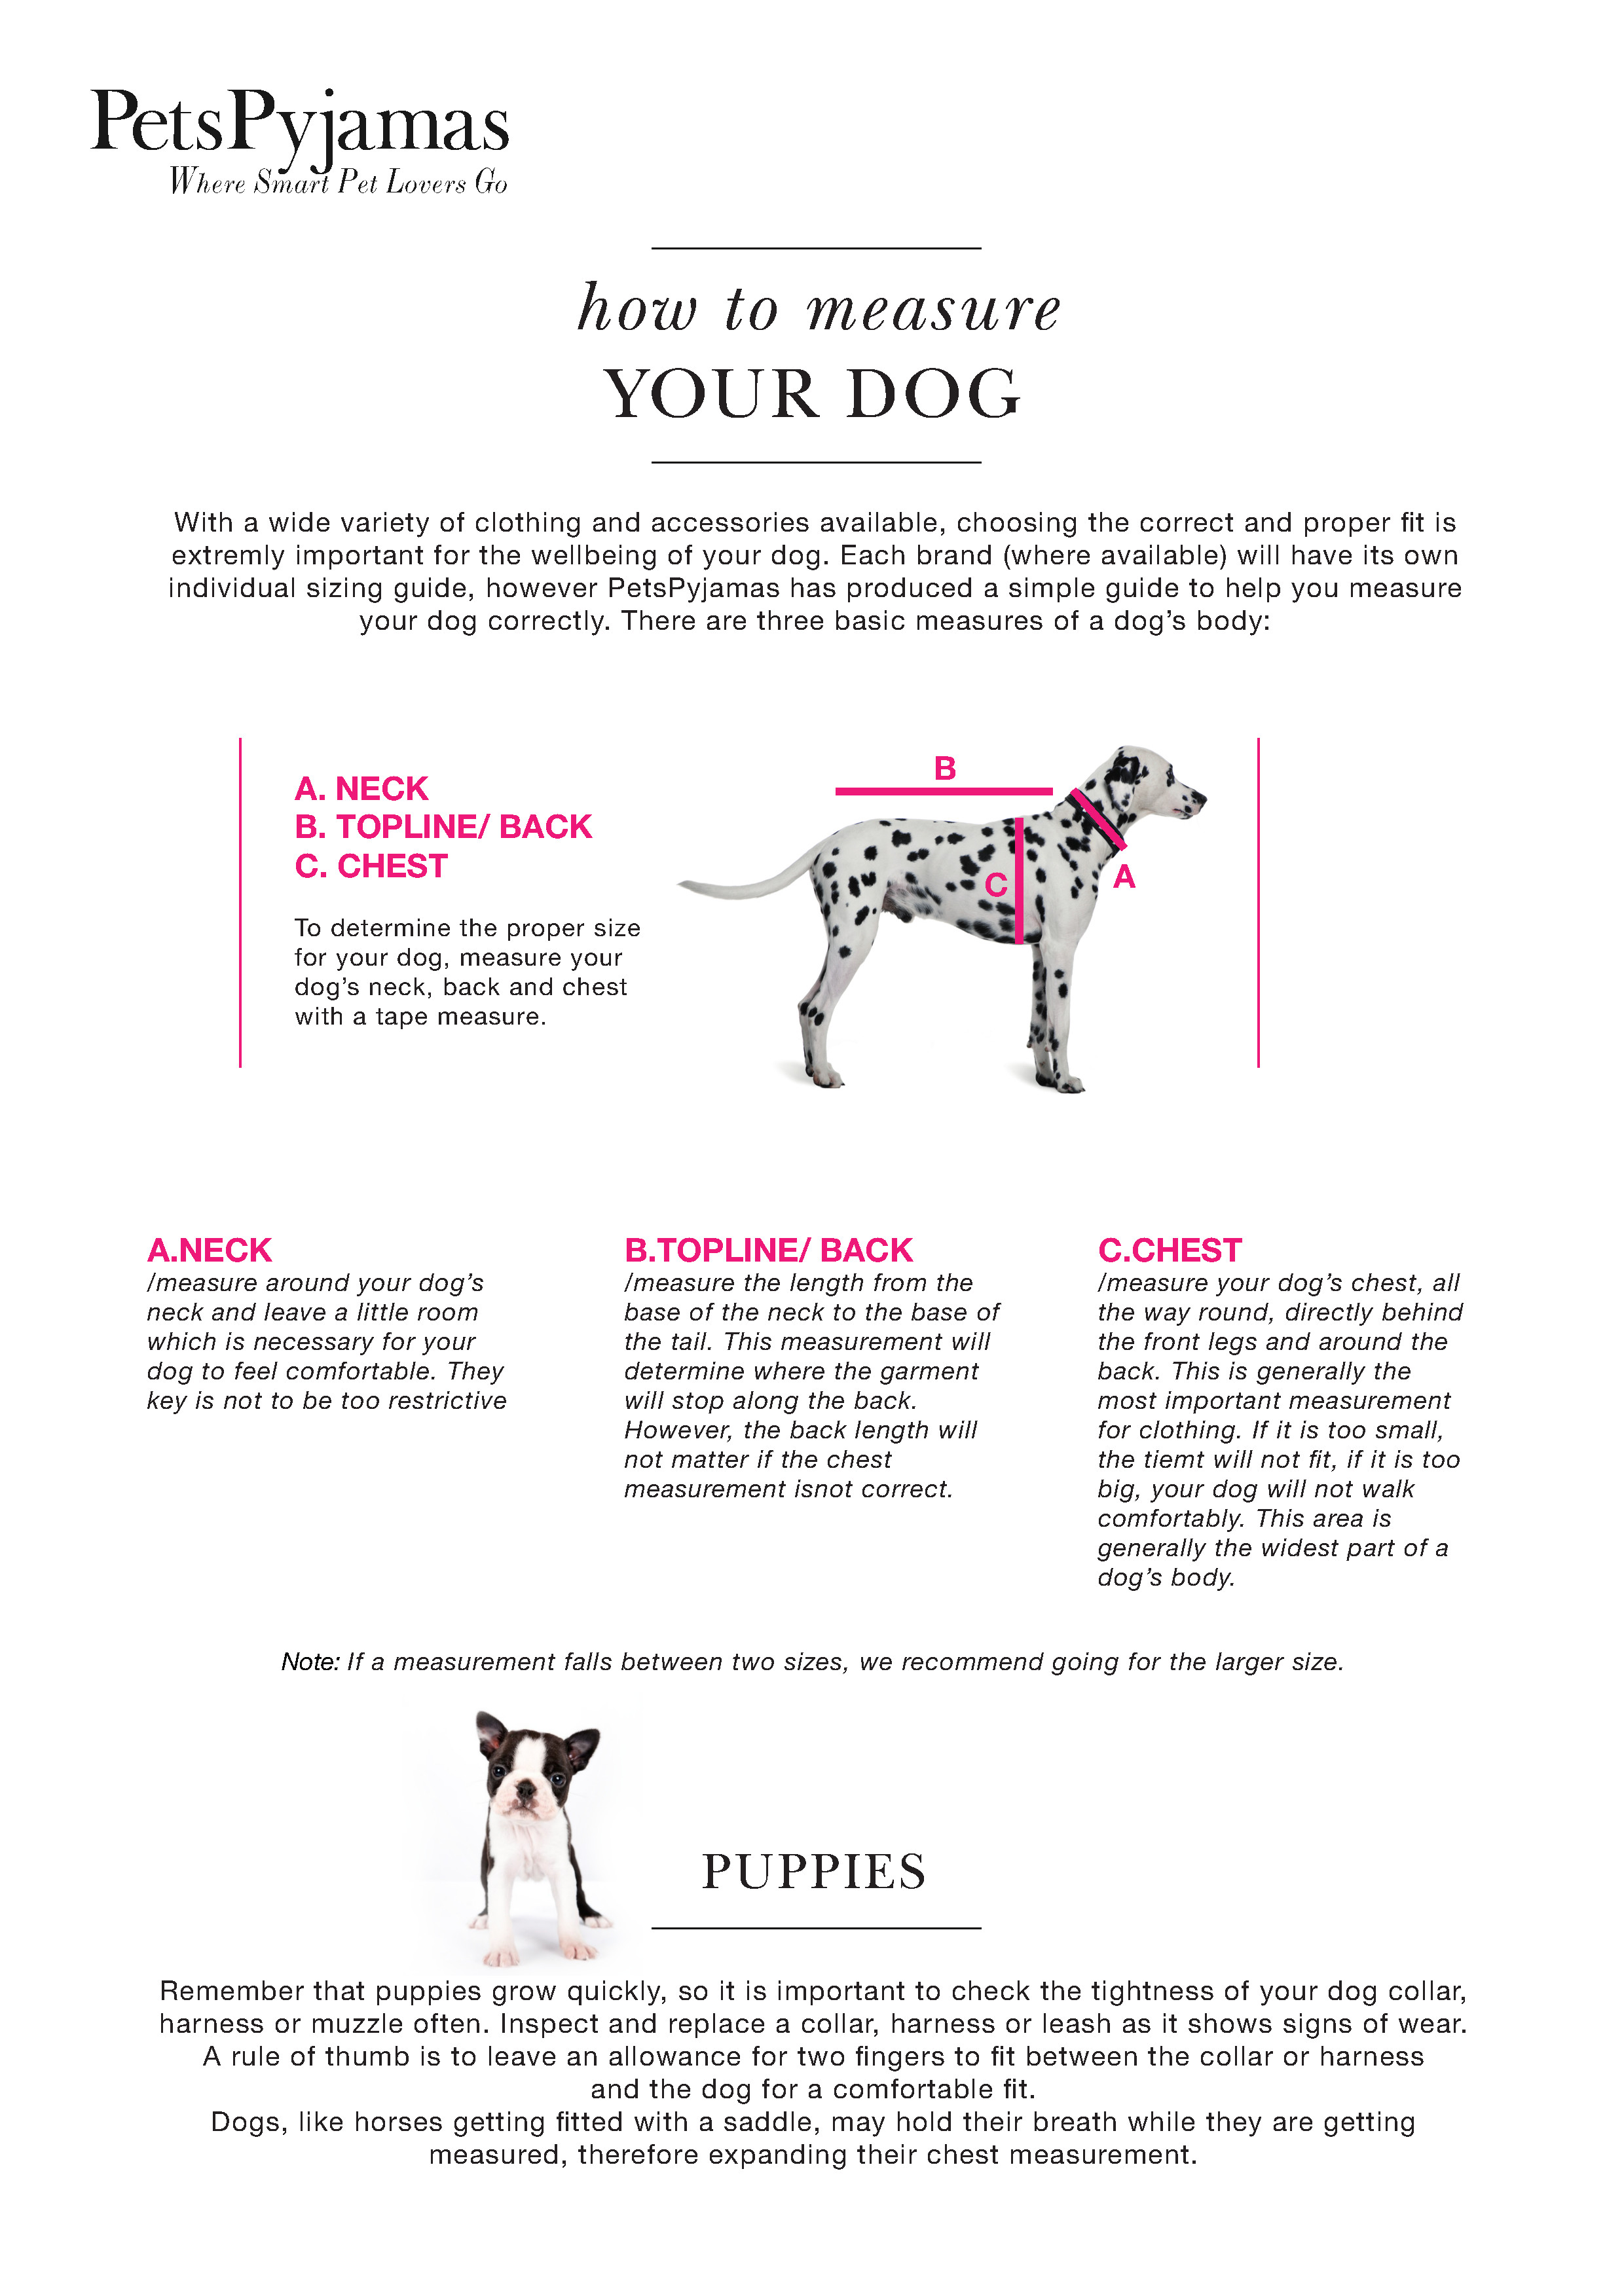 Before you buy a dog collar or harness, a brand new leash or a dog bed, please read our guide on how to measure your dog. PetsPyjamas.com has produced a simple guide to help you find the perfect fit. There are 3 basic measures of a dog's body: neck, back, chest (or girth).